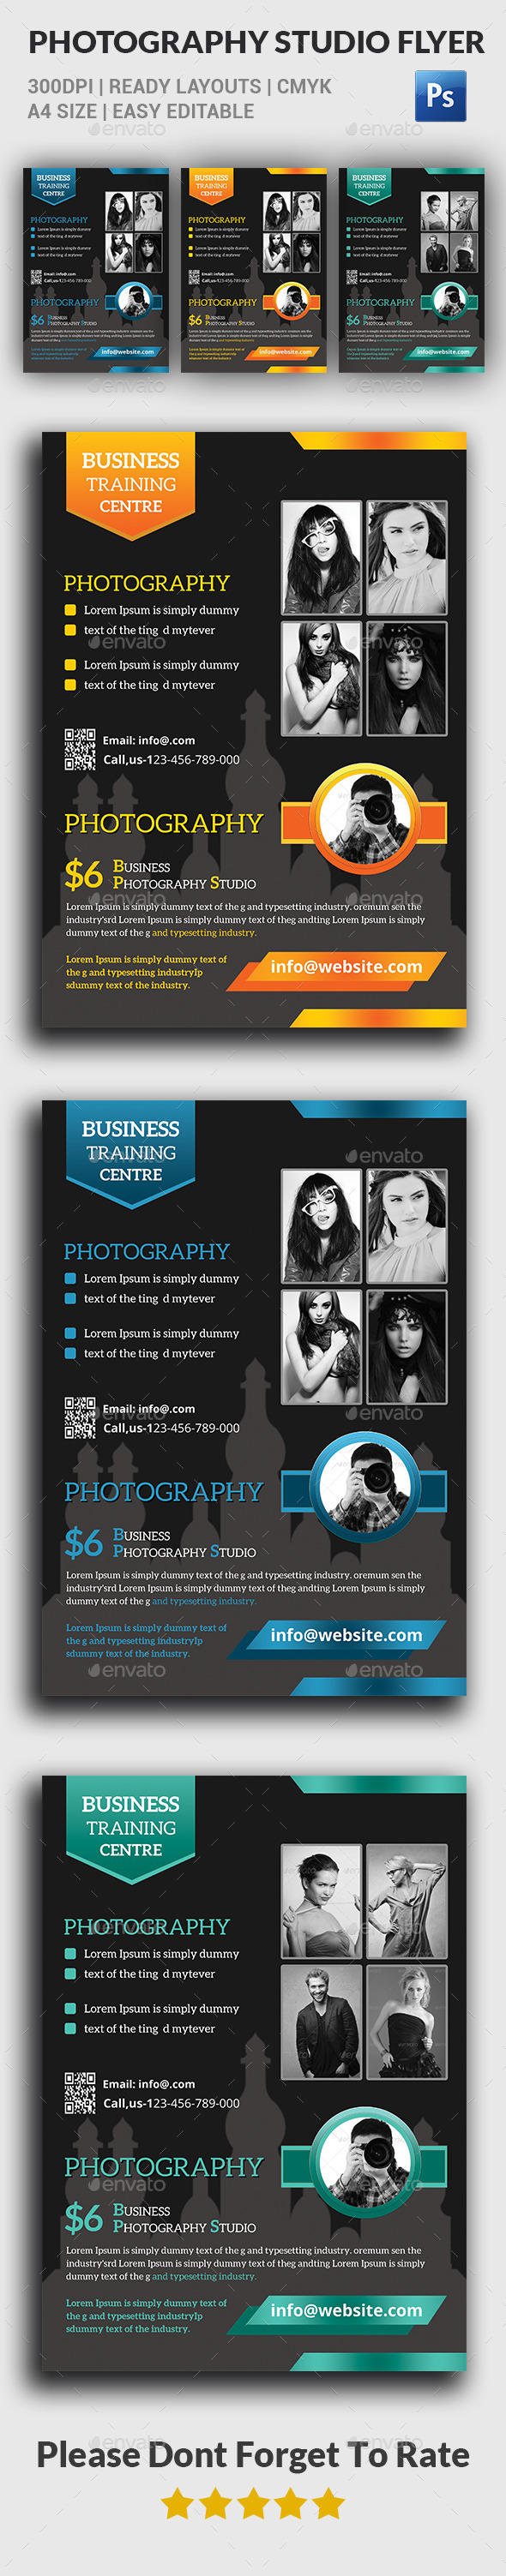 Photography Studio Flyer - Corporate Flyers